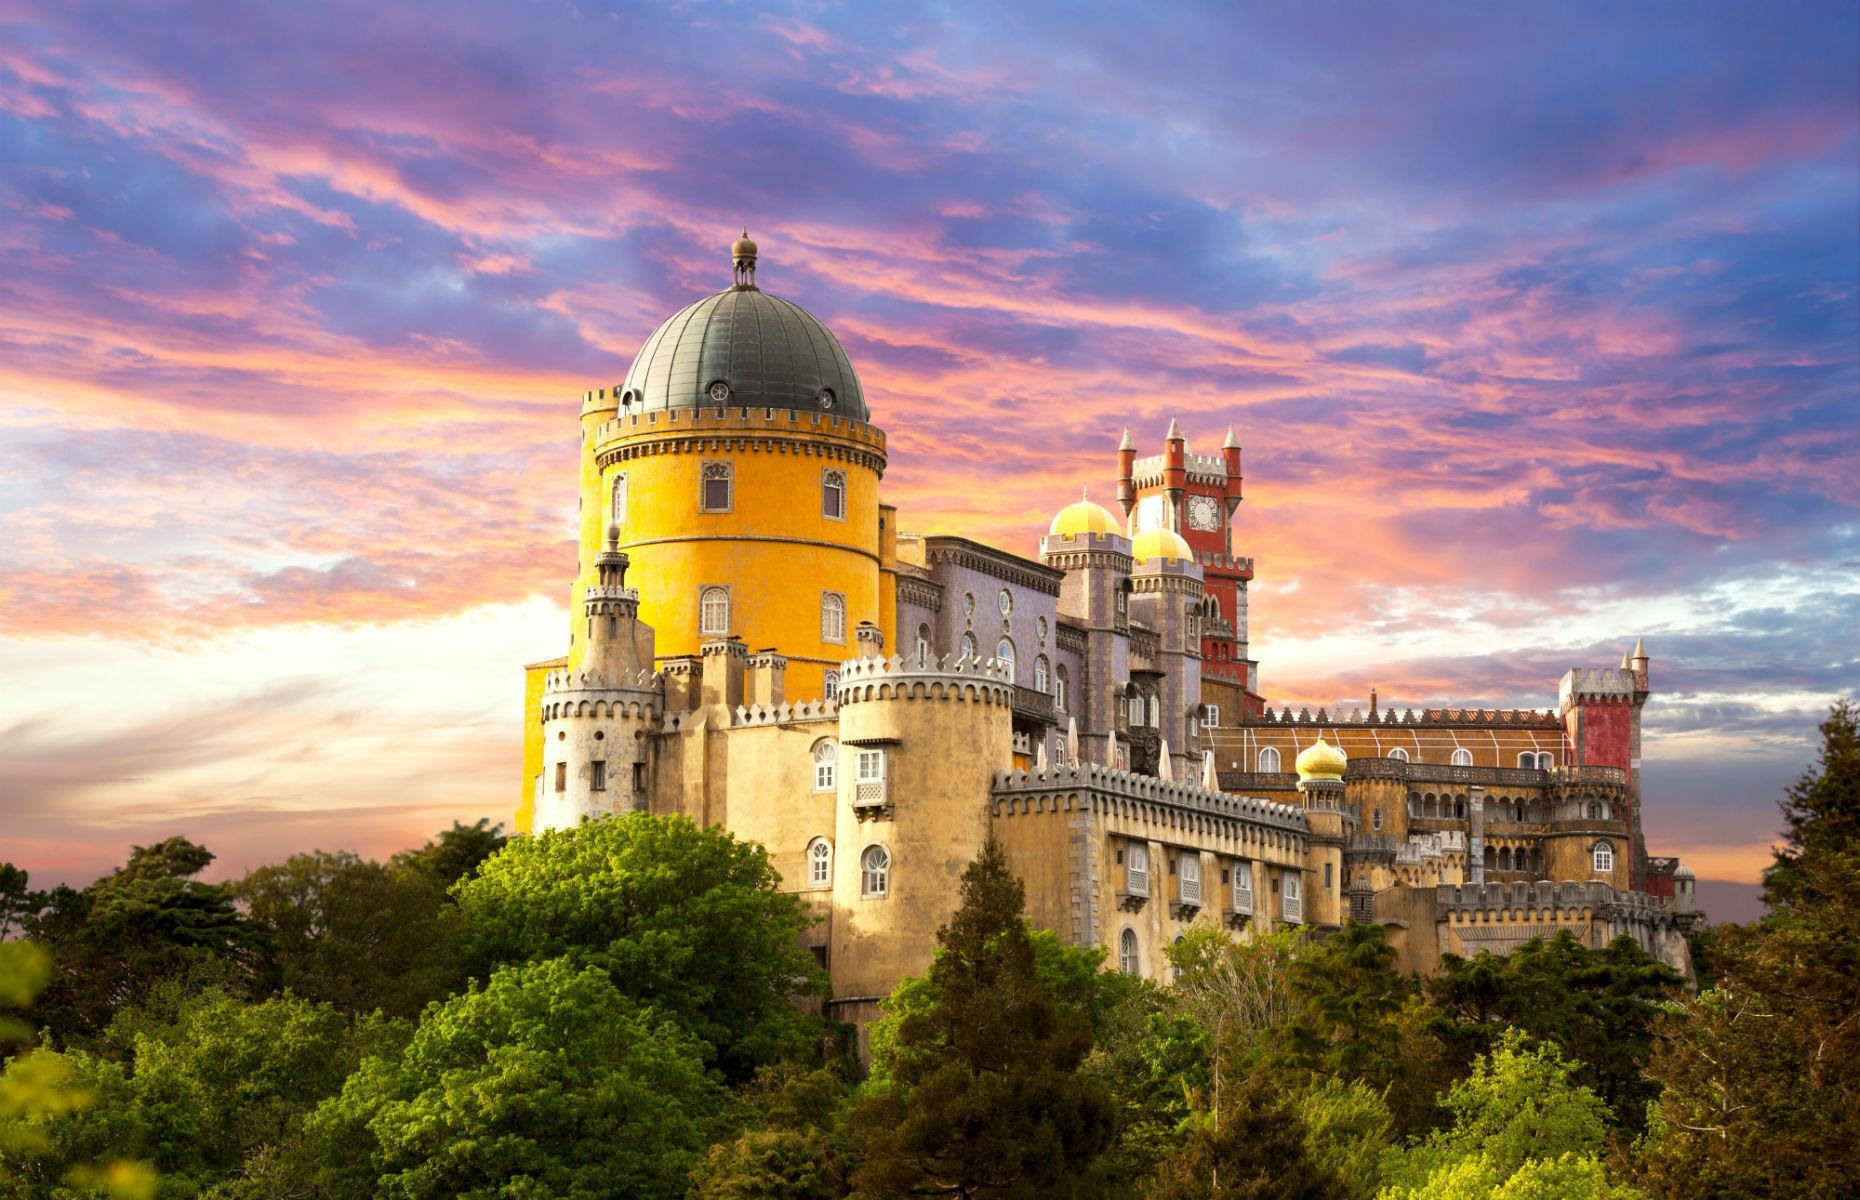 Slide 38 of 61: The enchanting Pena Palace, near Sintra, has a storybook quality about it. Designed in a 19th-century Romantic style, it started life as a chapel. King Ferdinand II of Portugal elevated it to its current magnificence after acquiring the property in the 1830s.